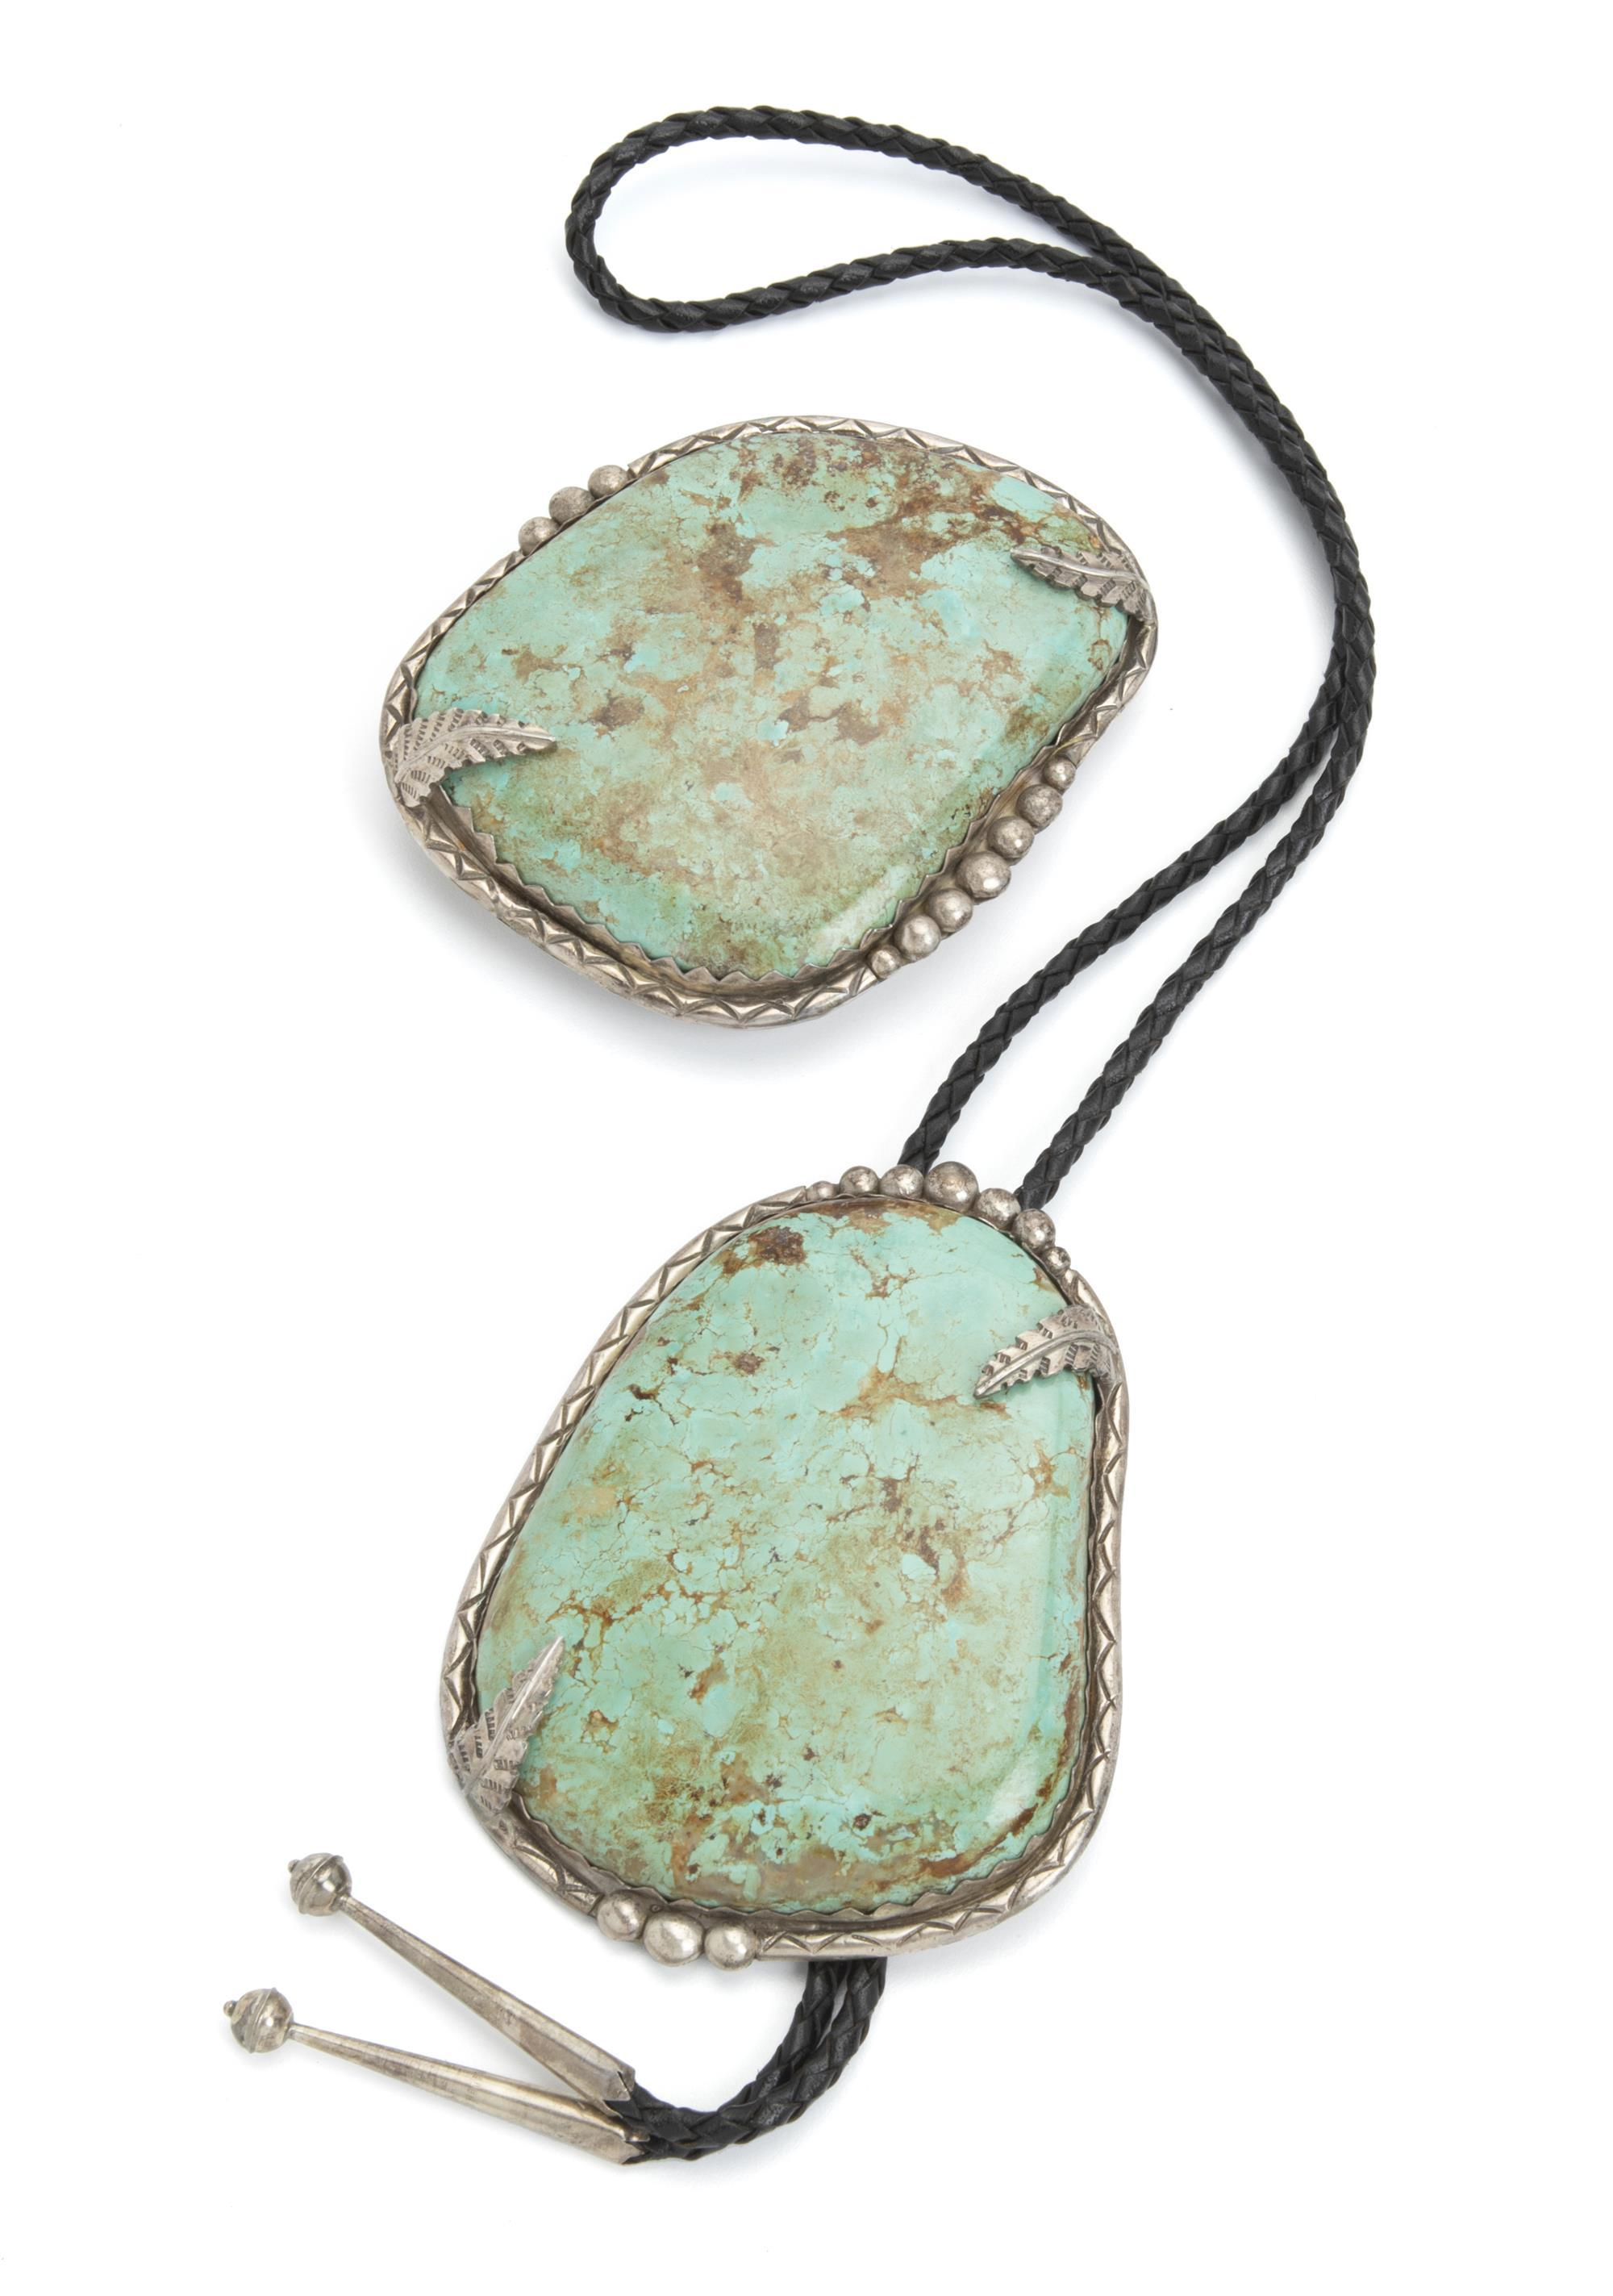 Two Felix Chama turquoise and sterling silver items